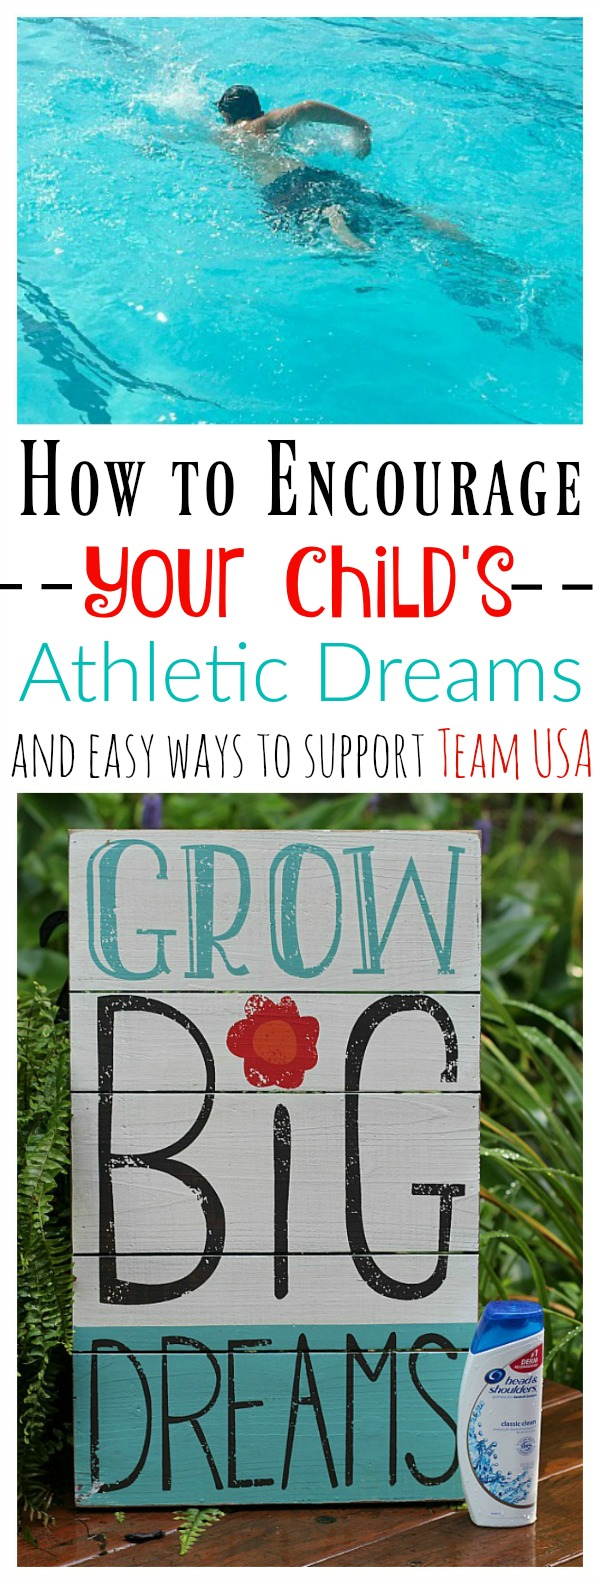 How to Encourage Your Child's Athletic Dreams